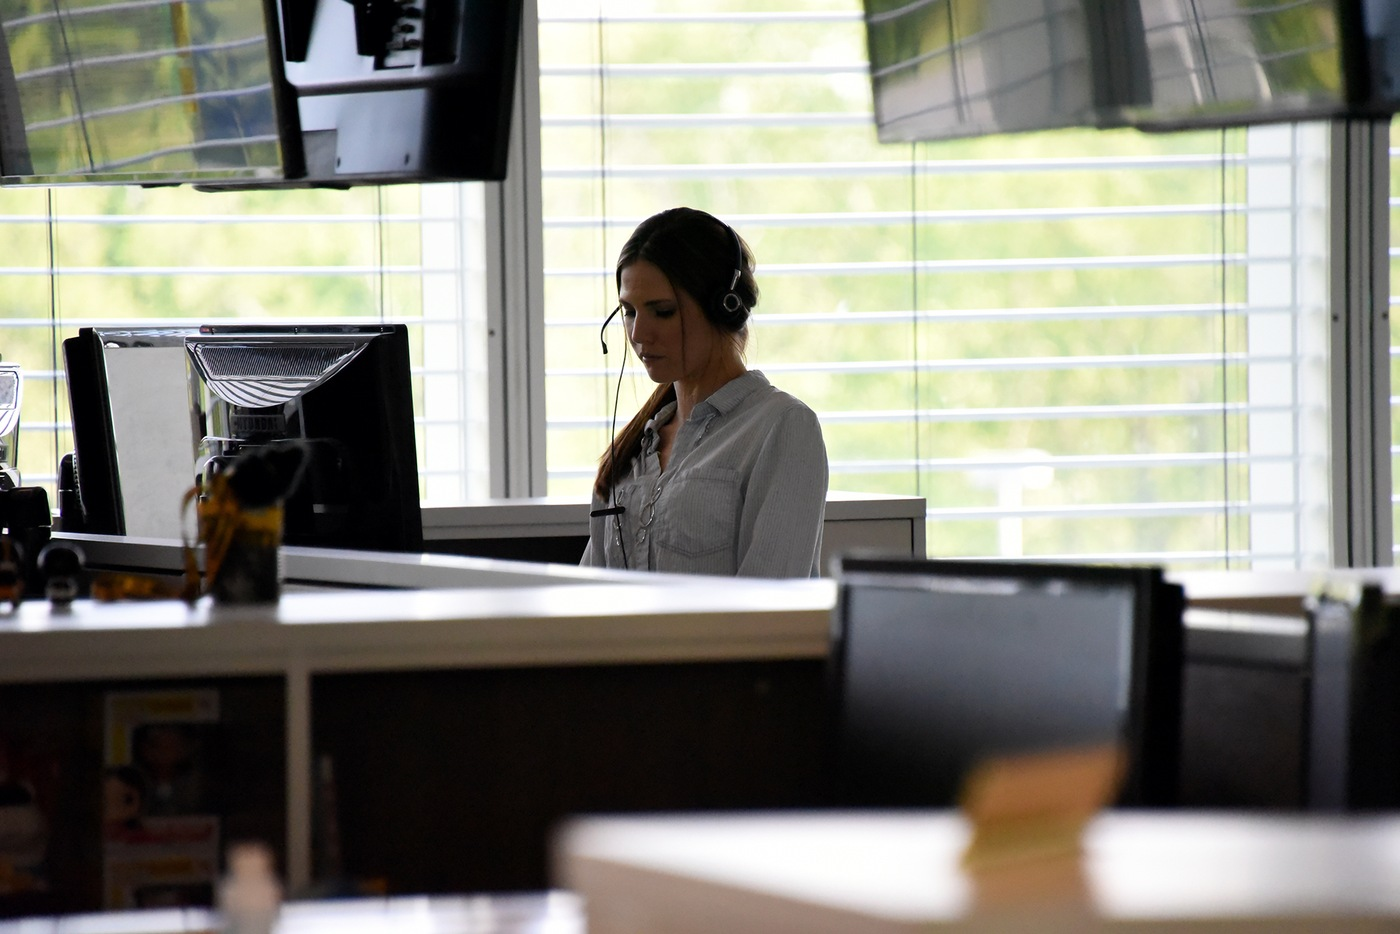 A customer service representative takes information from a caller at the Public Access Line, part of the Bureau's Criminal Justice Information Services (CJIS) Division in Clarksburg, West Virginia.